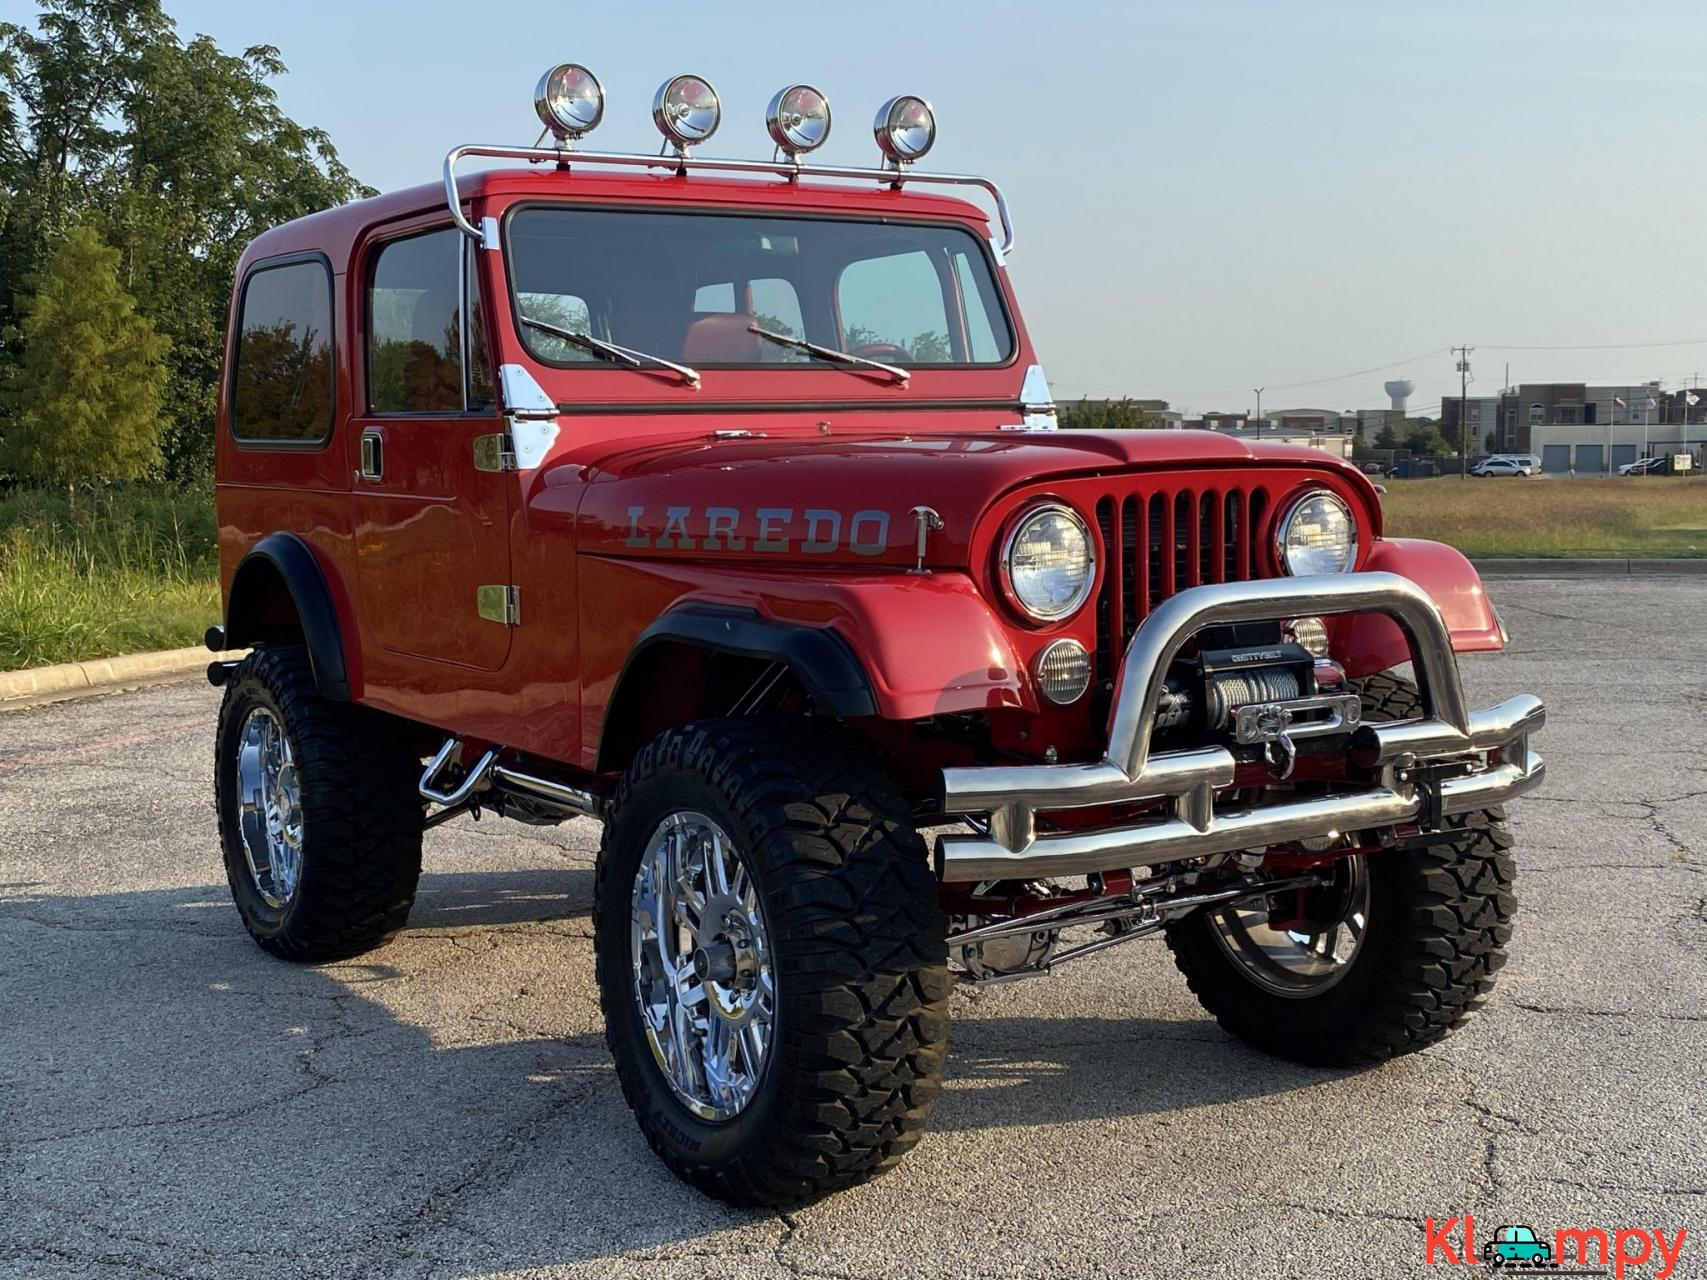 1983 Jeep CJ-7 Supercharged 350 V8 - 1/20